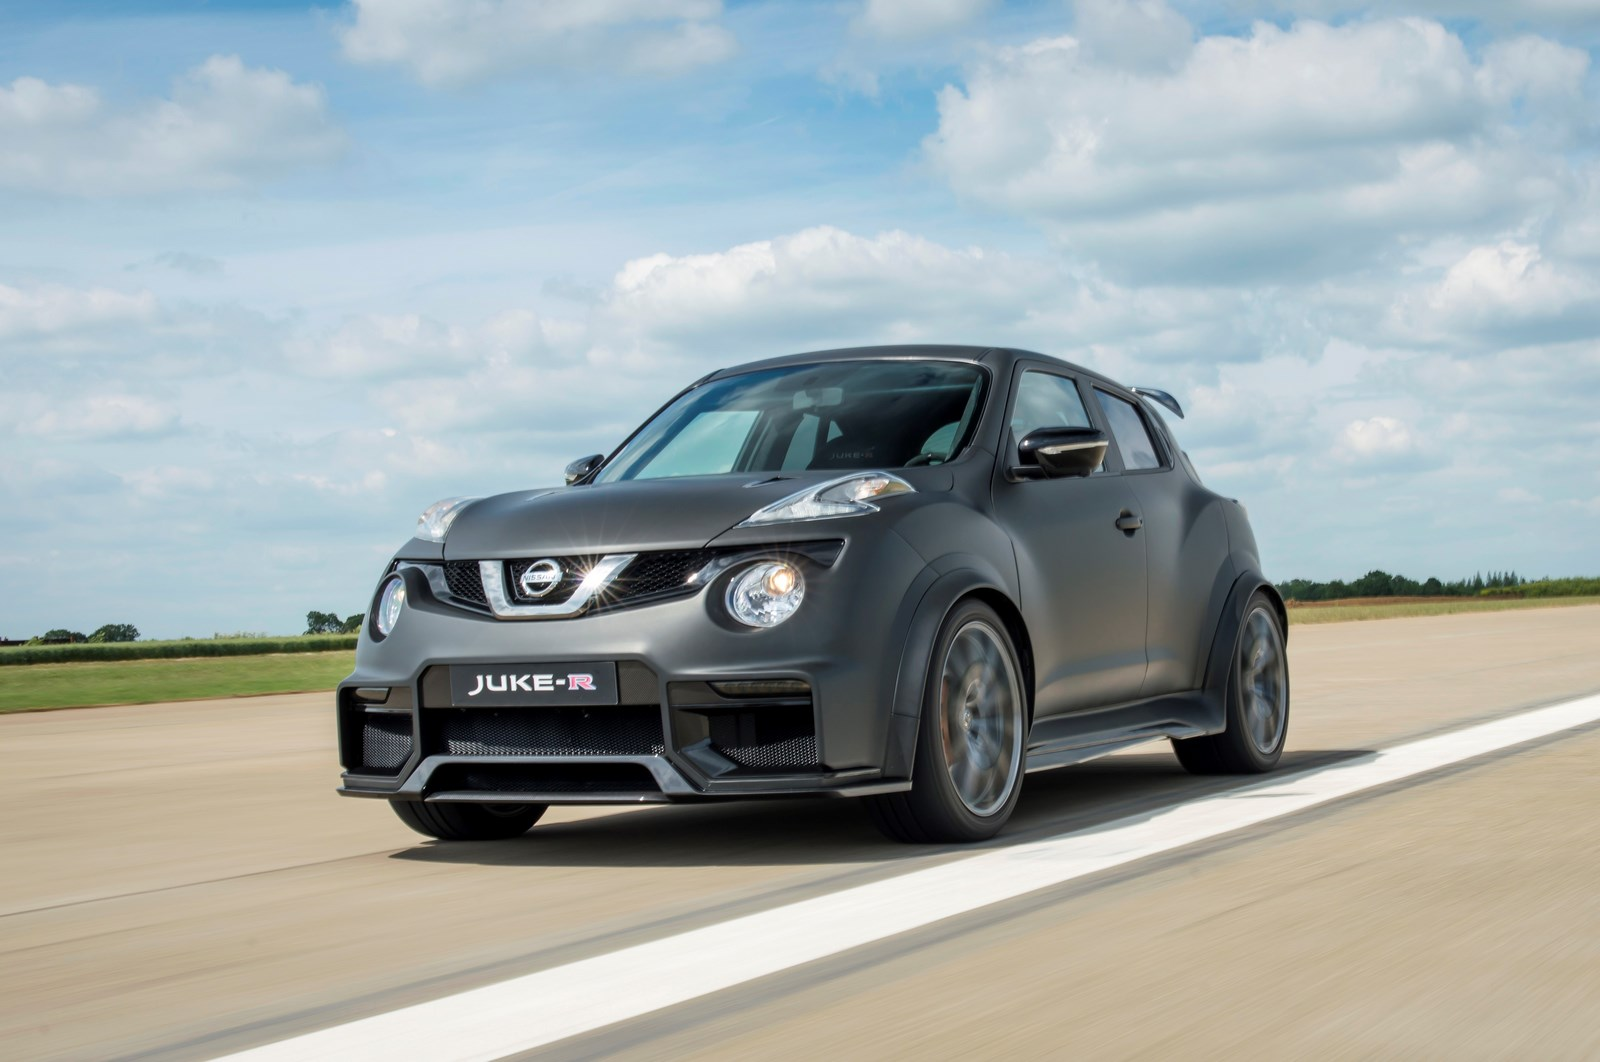 nissan juke r 2 0 una bestia urbana revista del motor. Black Bedroom Furniture Sets. Home Design Ideas